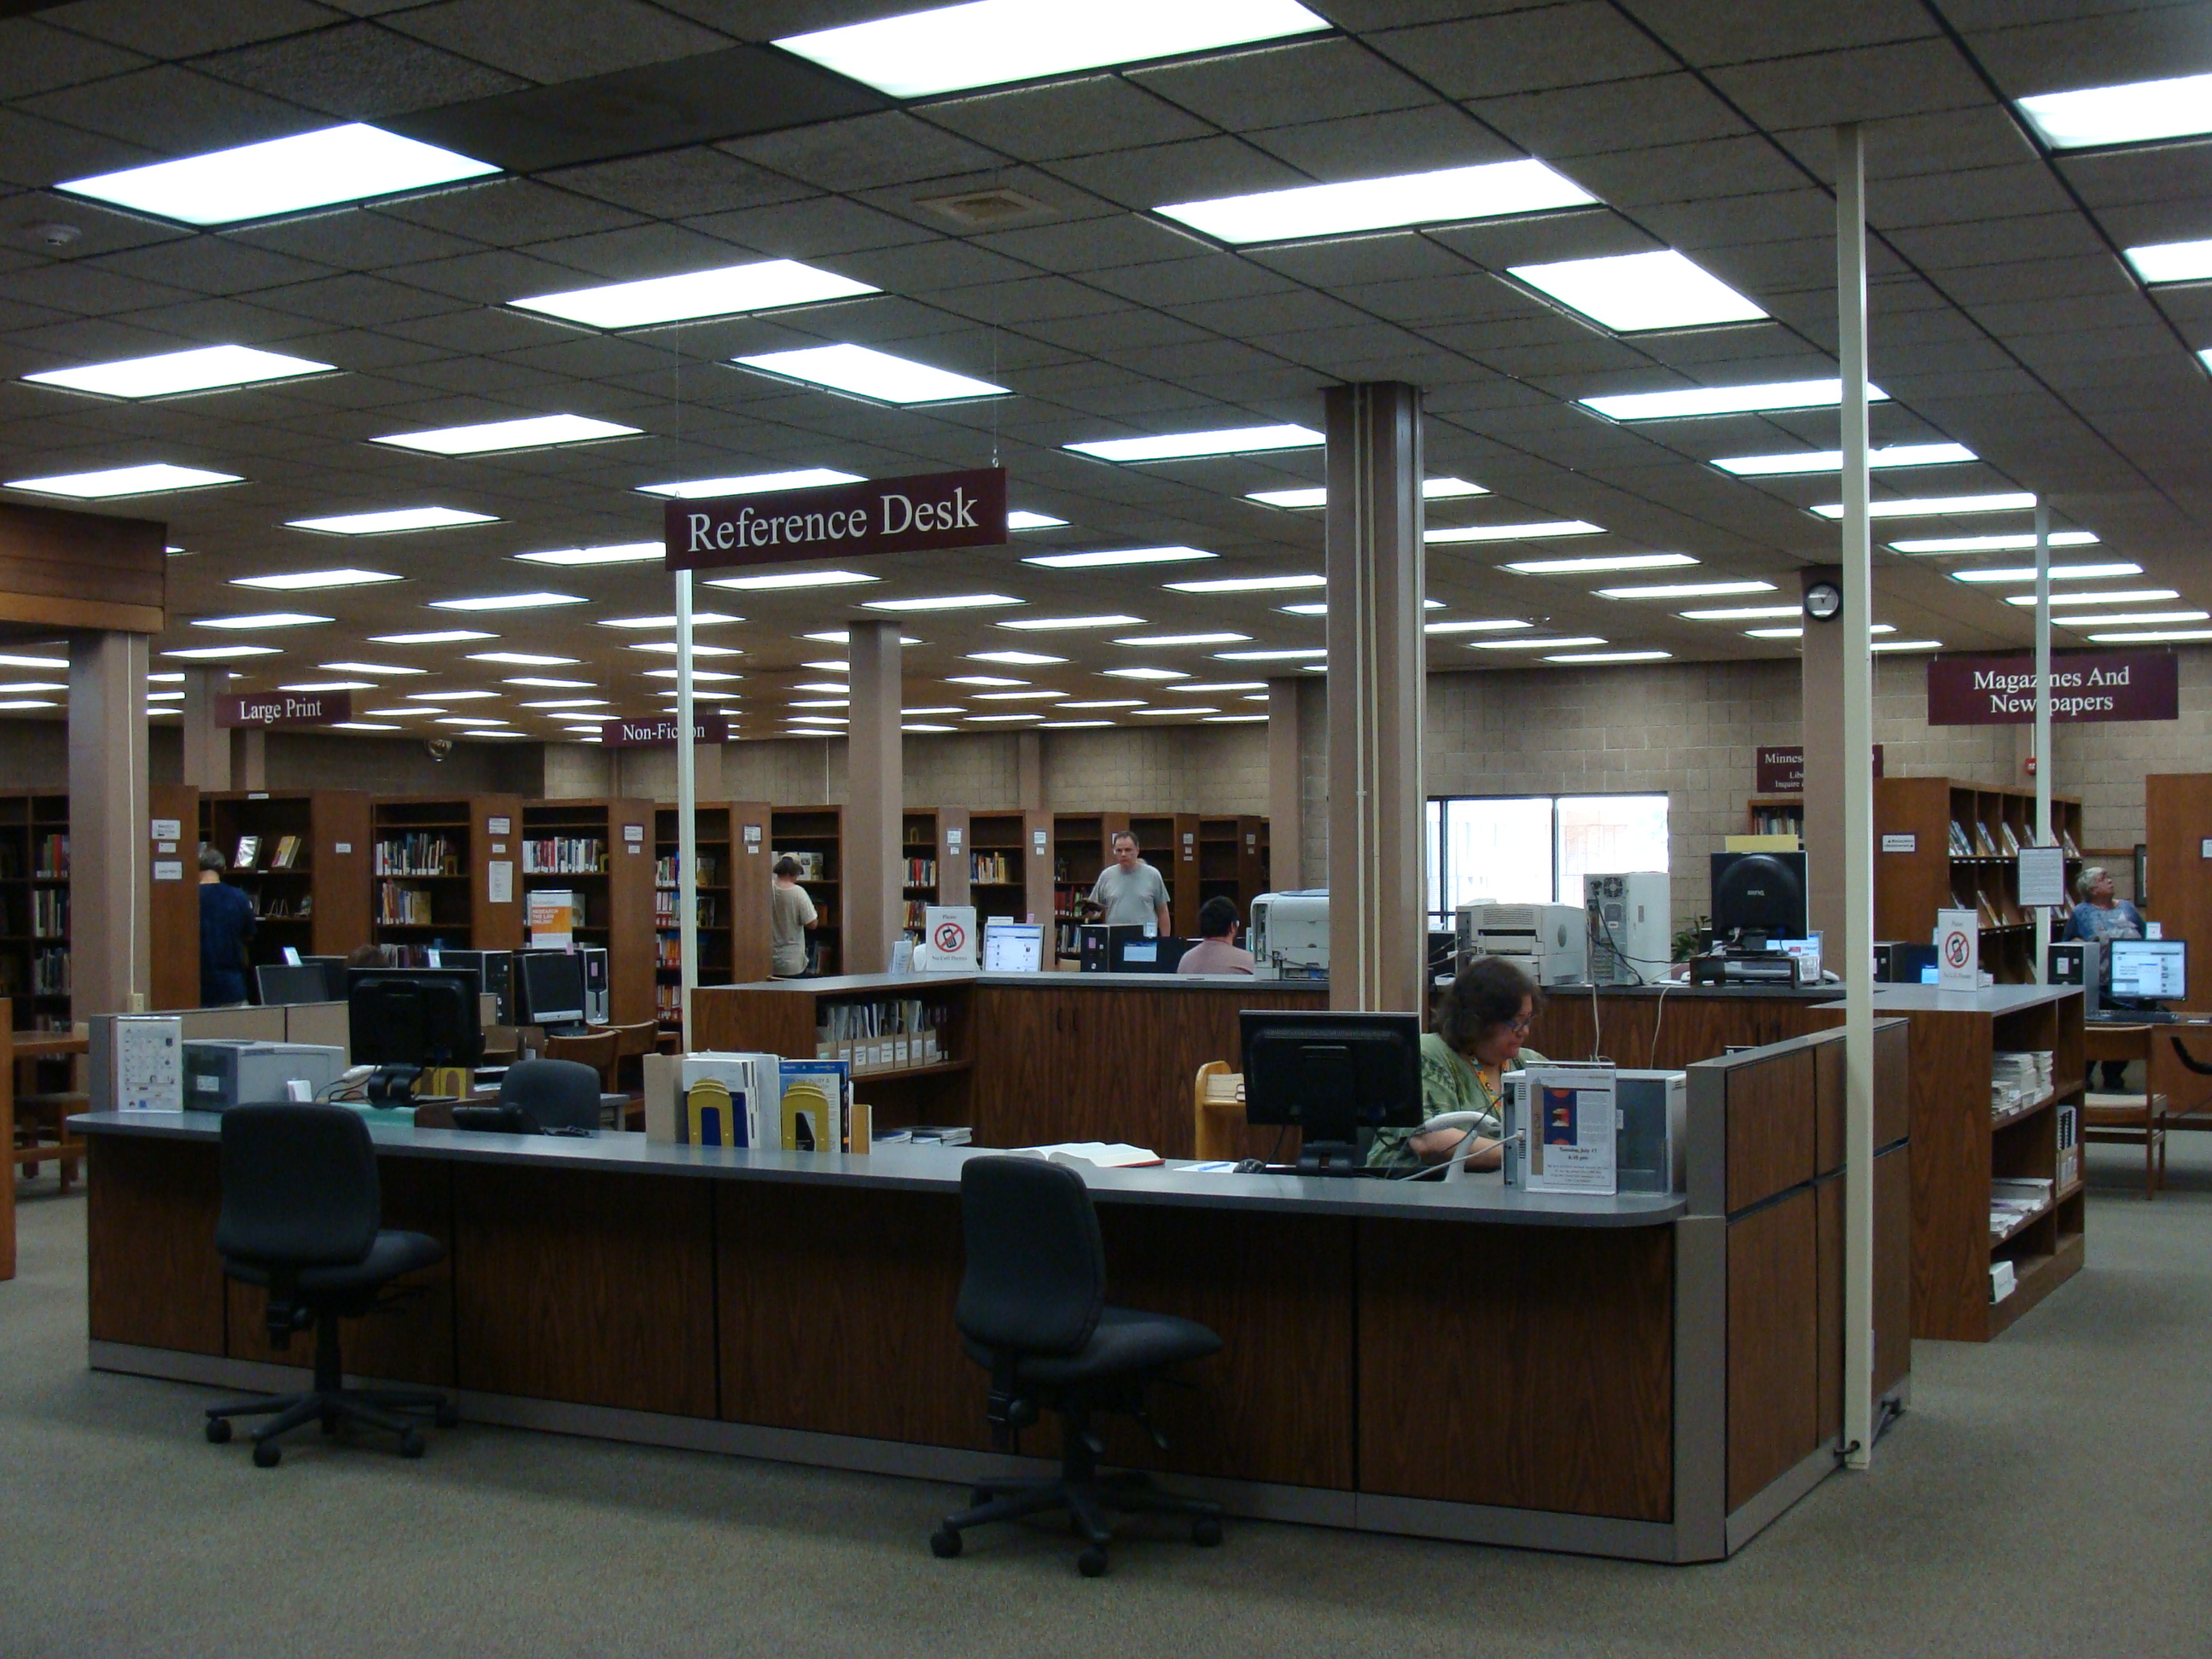 Adult wing of the library